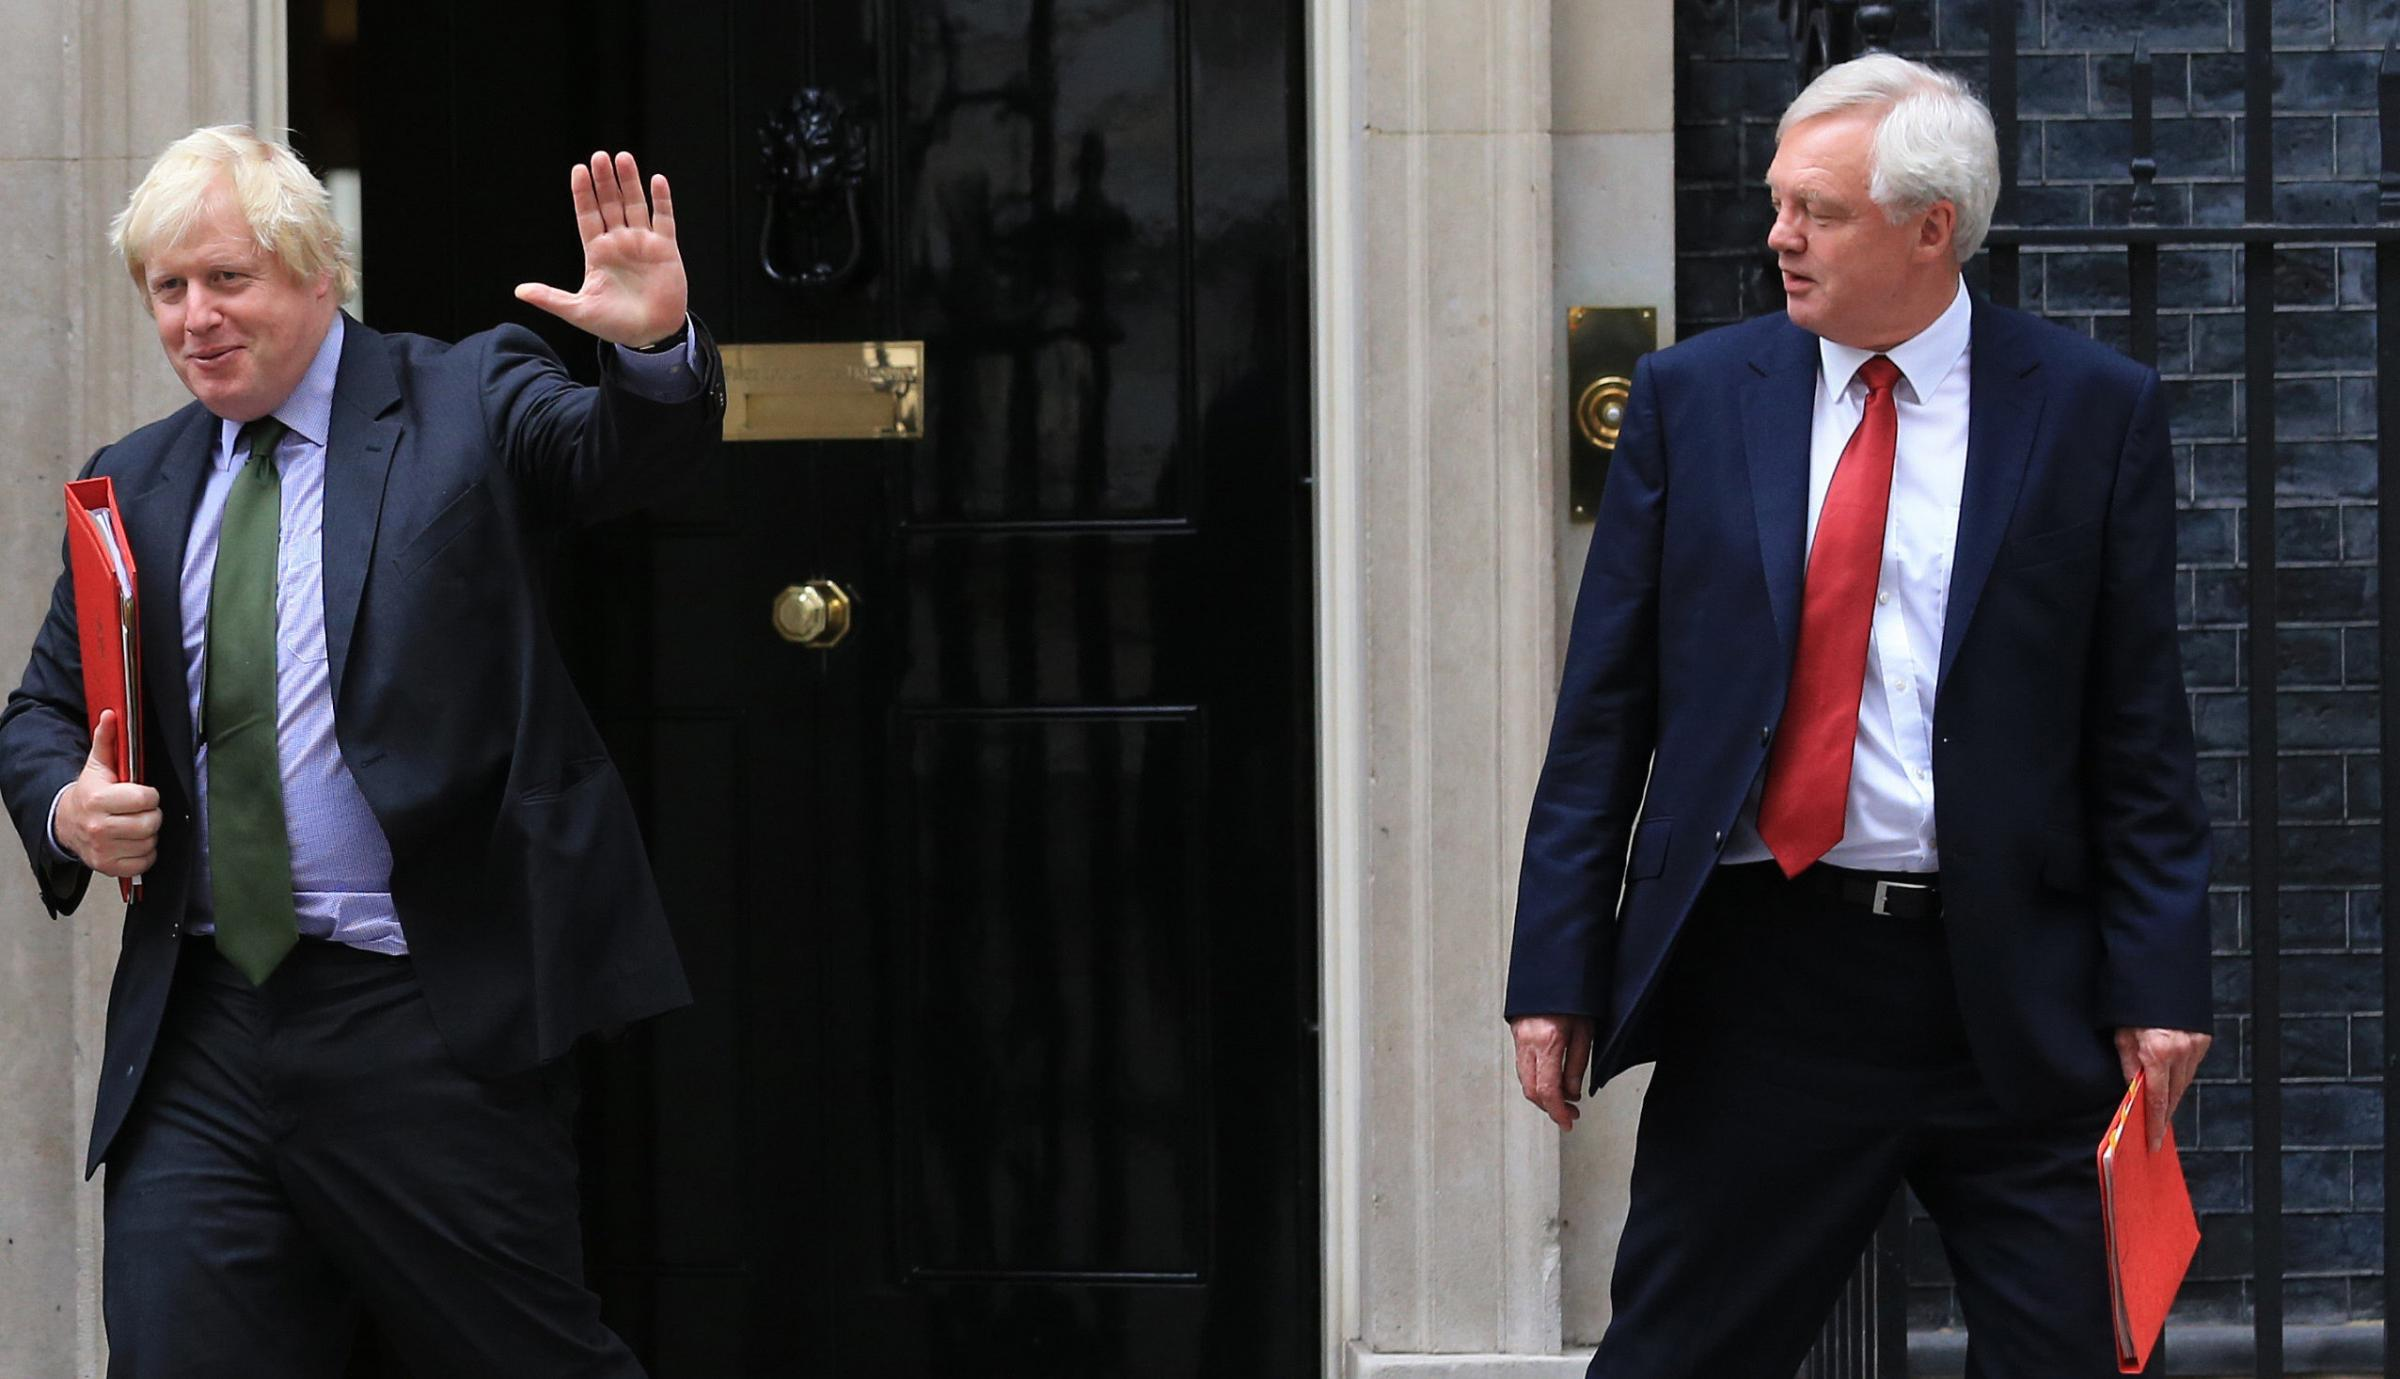 David Davis (right) resigned along with Boris Johnson, the politician with the biggest ego in the UK